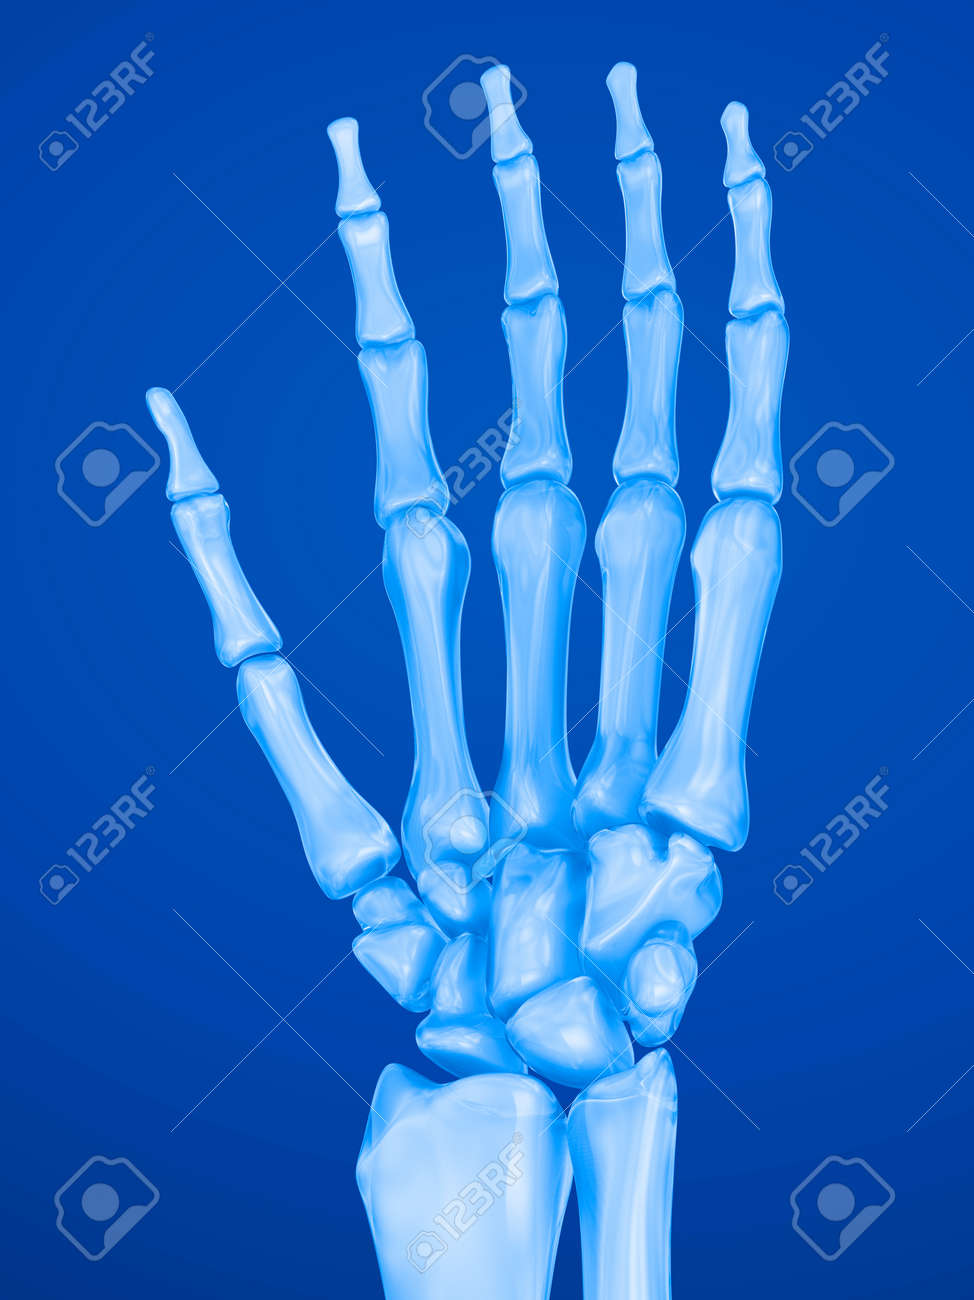 Human Wrist Anatomy Xray View Medically Accurate 3d Illustration